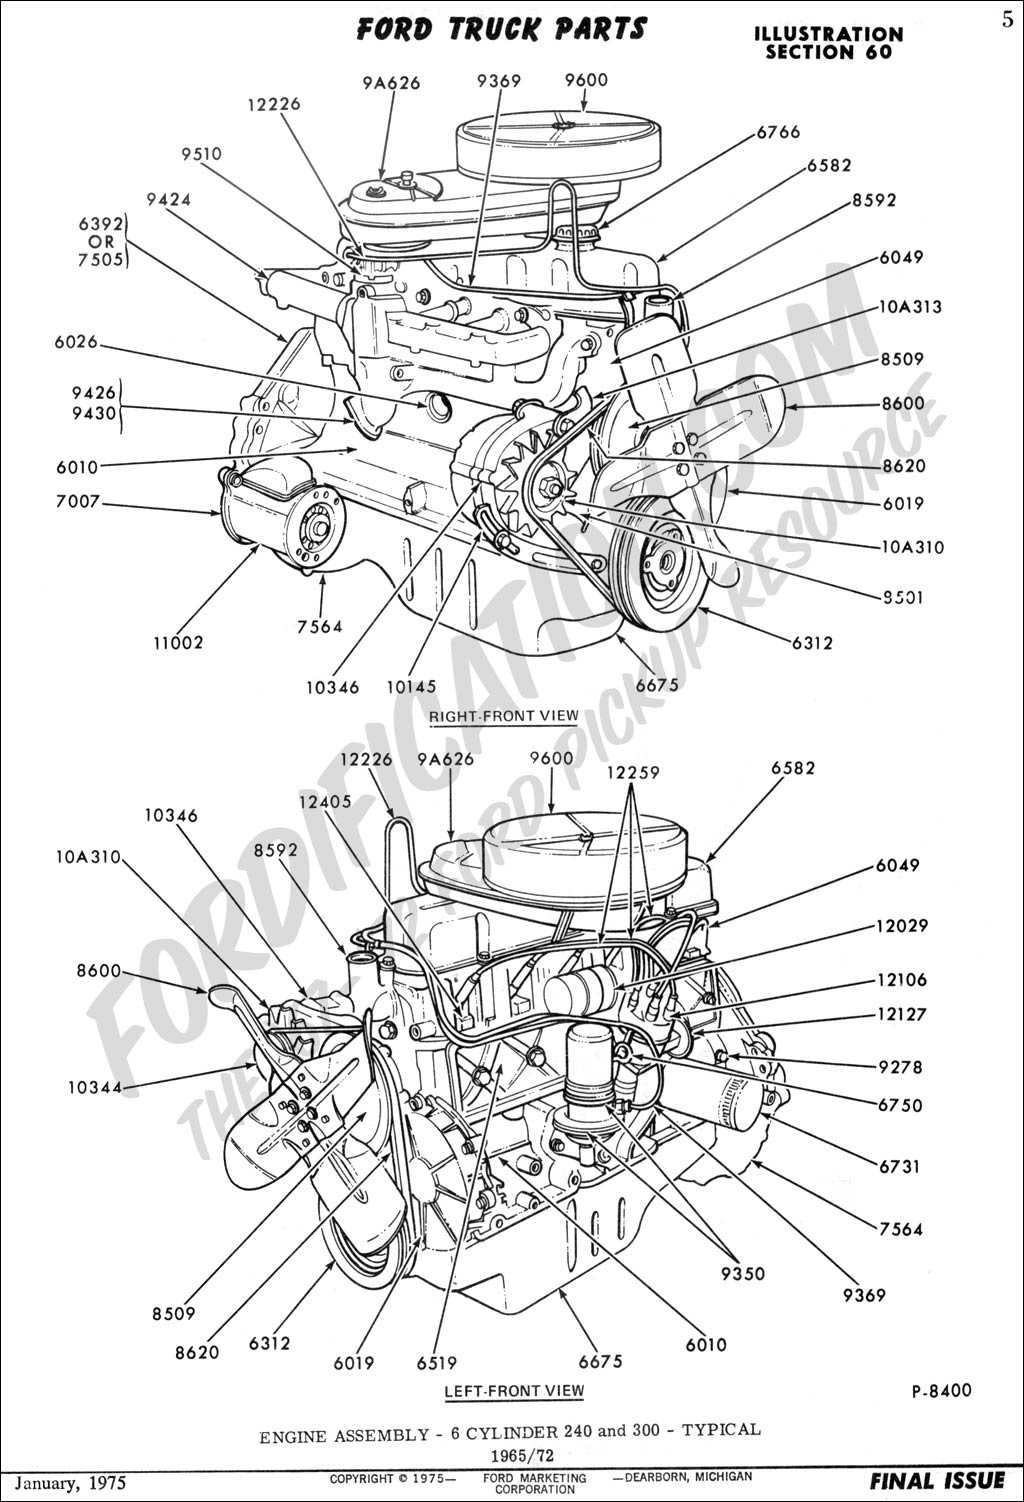 06 2001 FORD Ranger V6 4 as well Dodge Stratus Crankshaft Position Sensor Location E33f04a852c5f219 as well RepairGuideContent further 1098391 Oil Pump Location And Replacement furthermore Belt Pulley Kit For Holden Colorado Ute Rg 2 8l 2 5l Turbo Diesel Jun2012. on 76 ford ranger